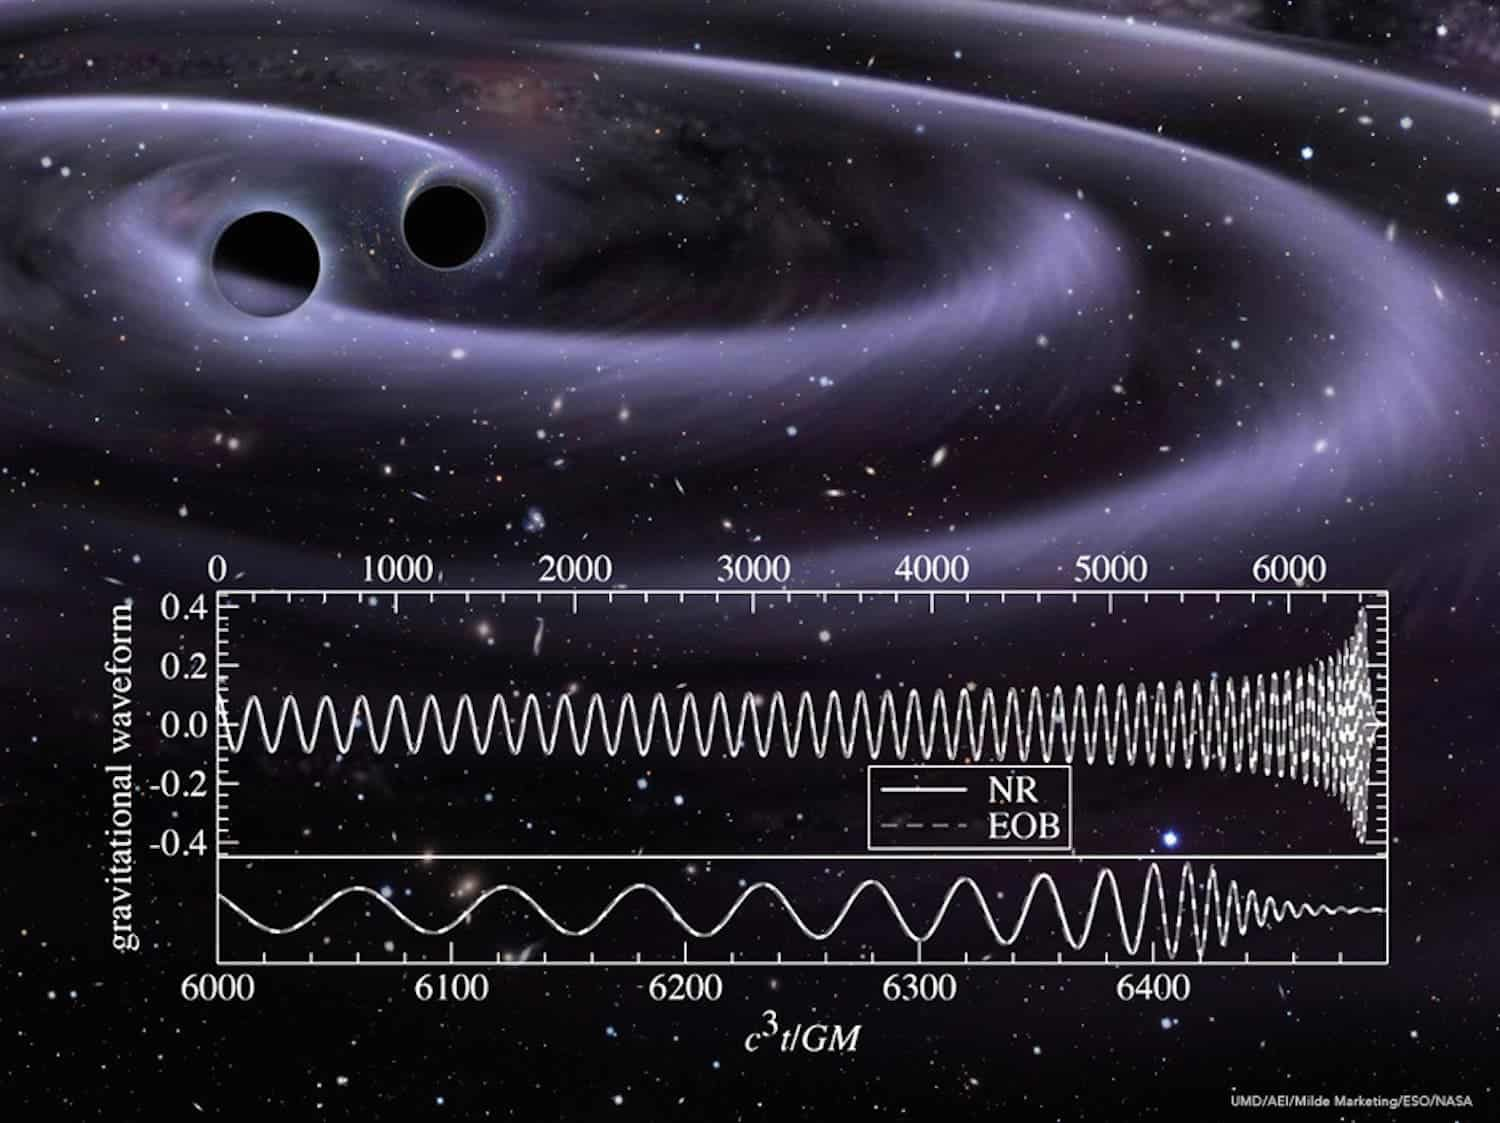 Detecting gravitational waves from supermassive black hole collisions using pulsars